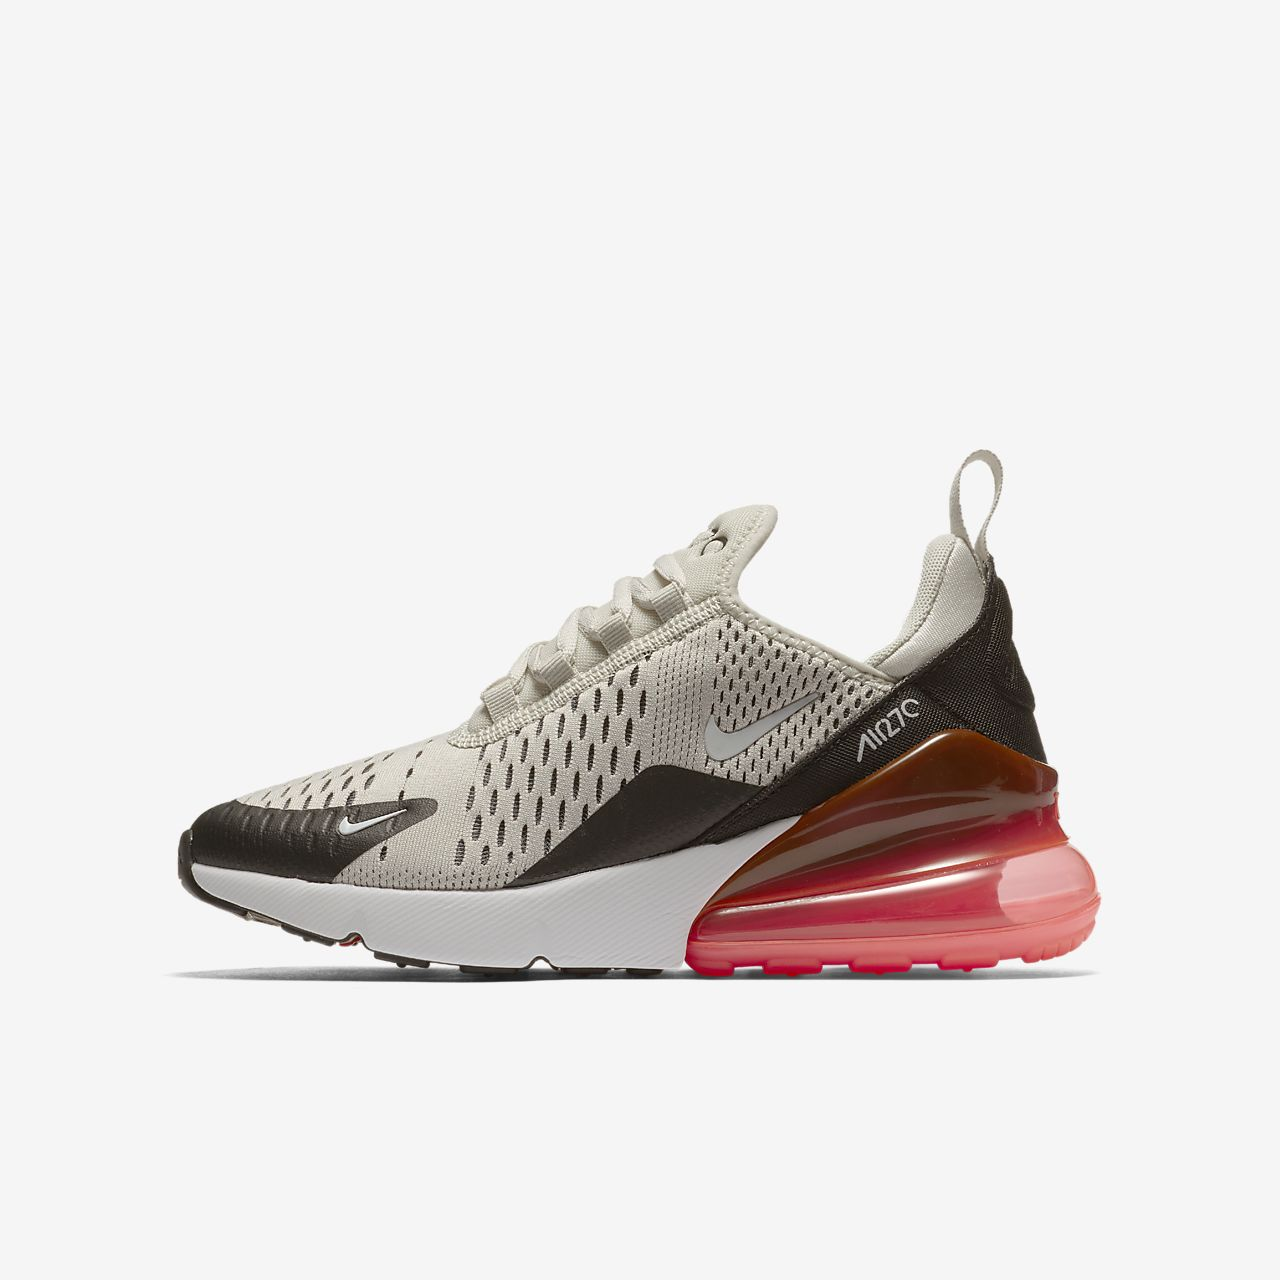 Air Max 95 W Running chaussures rose orange beige rose orange beigeNike